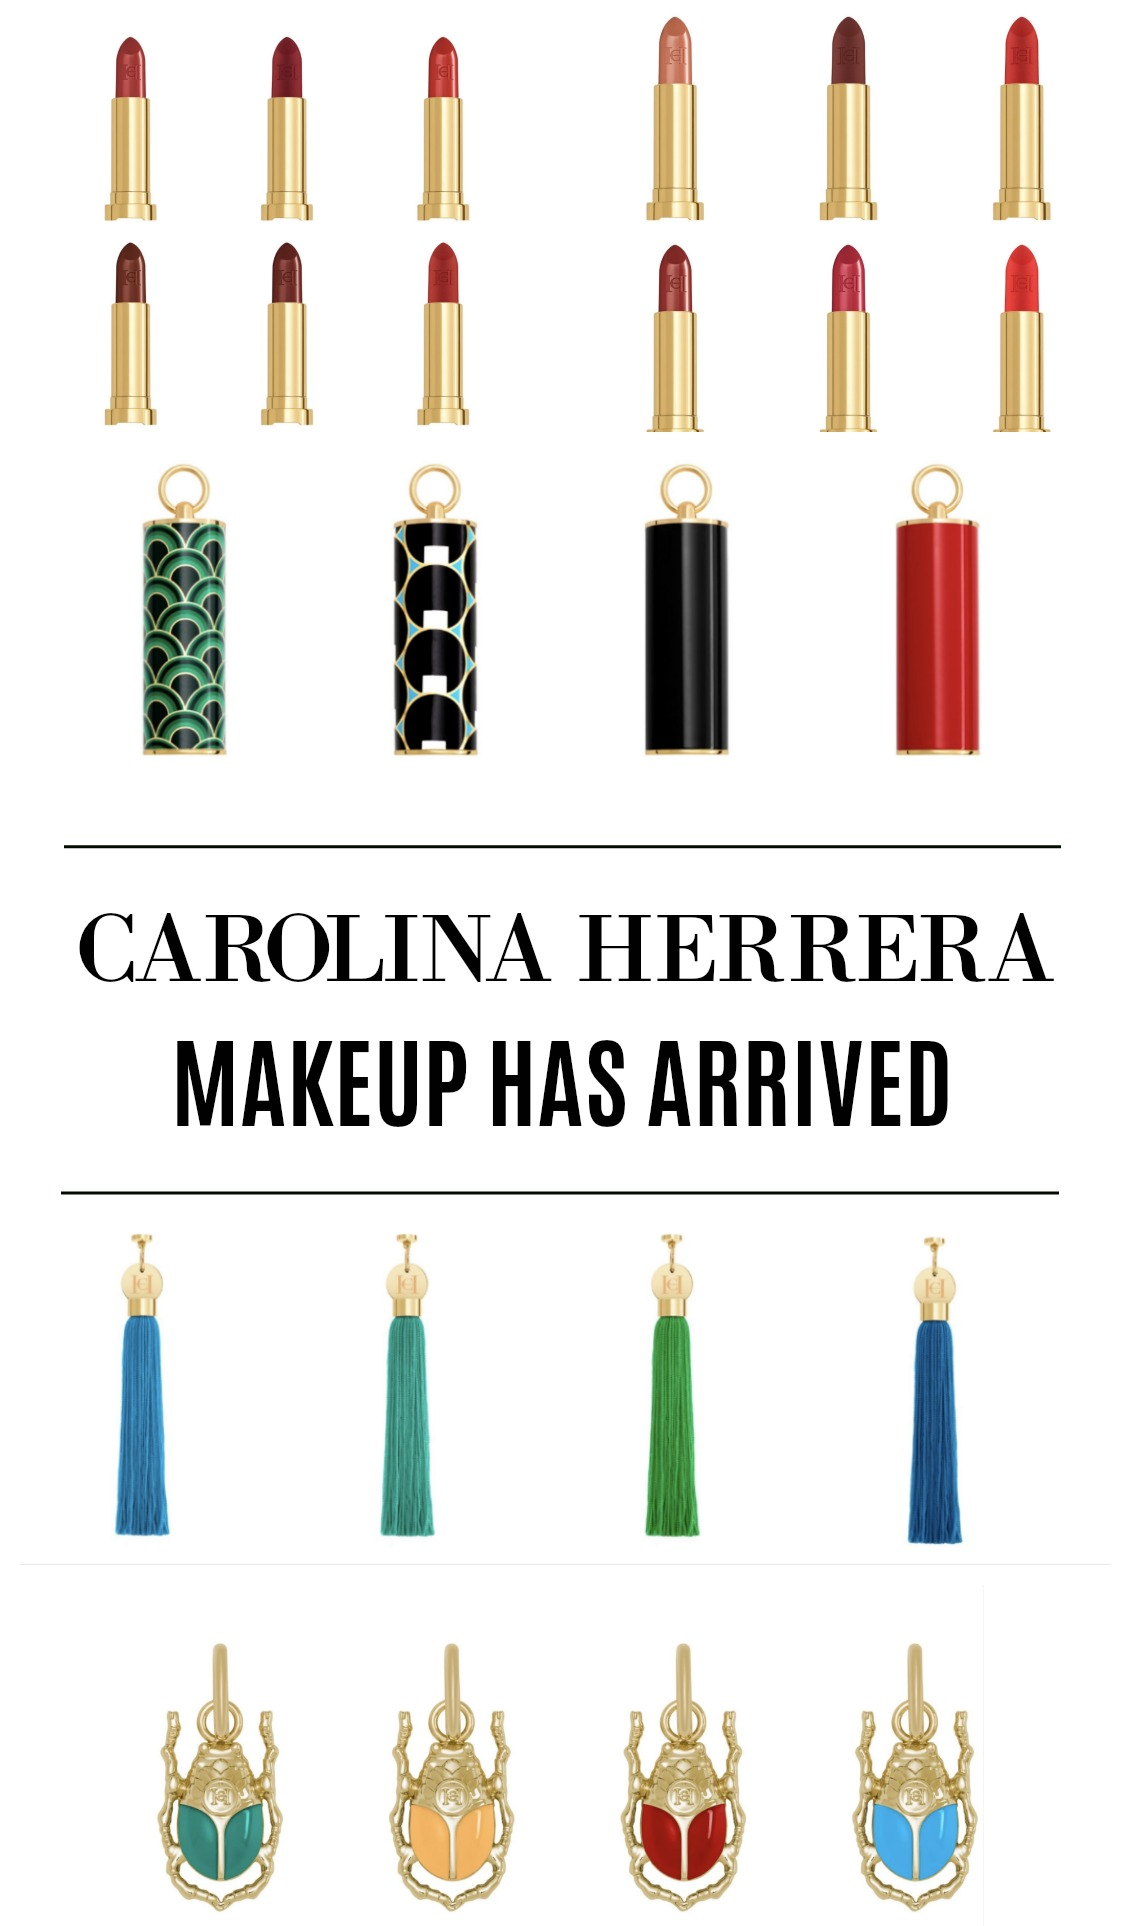 Carolina Herrera Makeup Launches with Luxury Lipsticks I Dreaminlace.com